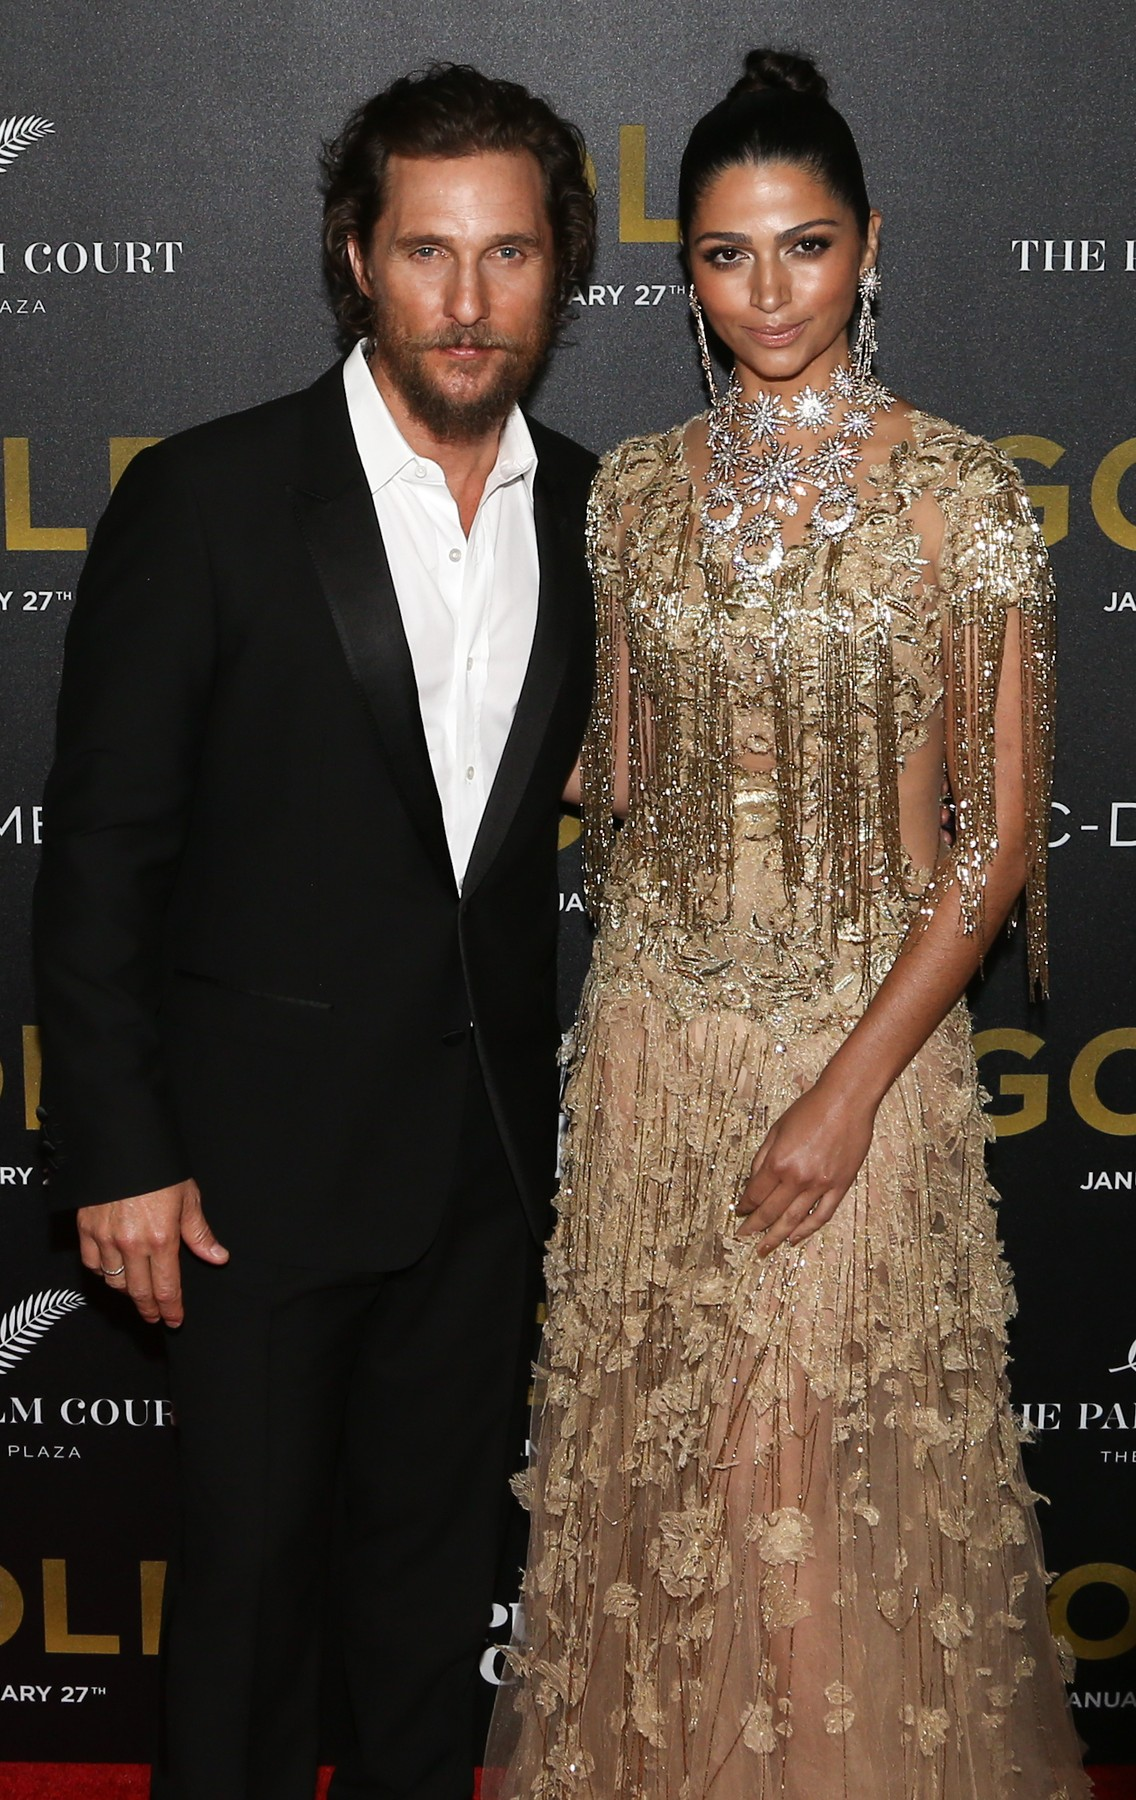 Actor Matthew McConaughey and Camila Alves attend the world premiere of 'Gold' hosted by TWC - Dimension with Popular Mechanics, The Palm Court & Wild Turkey Bourbon at AMC Loews Lincoln Square 13 in New York on January 17, 2017., Image: 311359690, License: Rights-managed, Restrictions: *** World Rights ***, Model Release: no, Credit line: Profimedia, SIPA USA